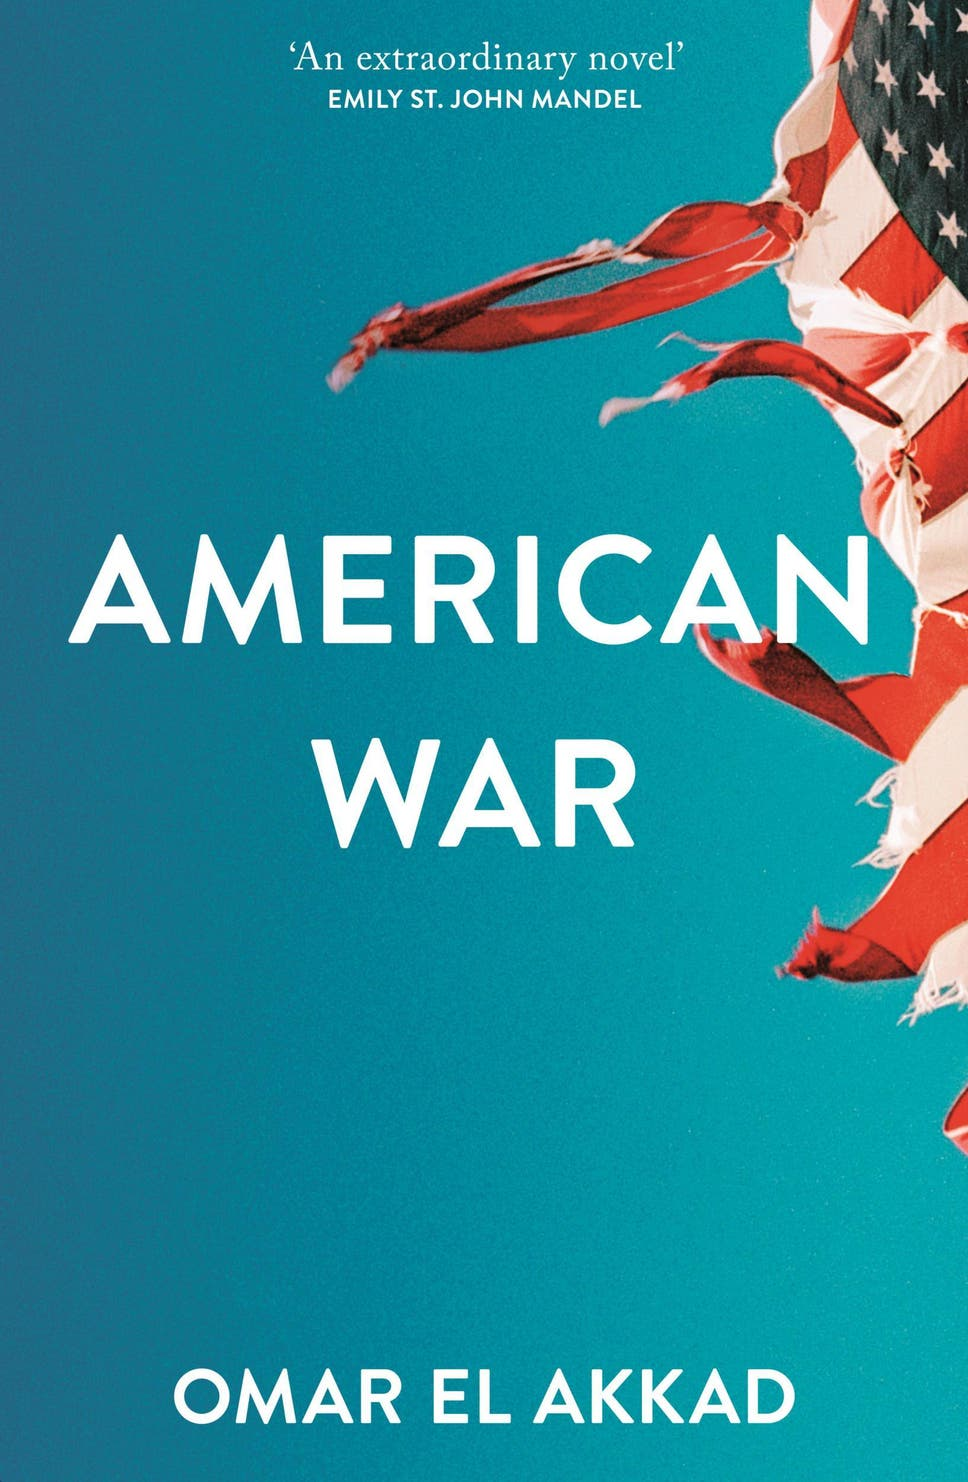 American War by Omar El Akkad, book review: Should be read as a ...